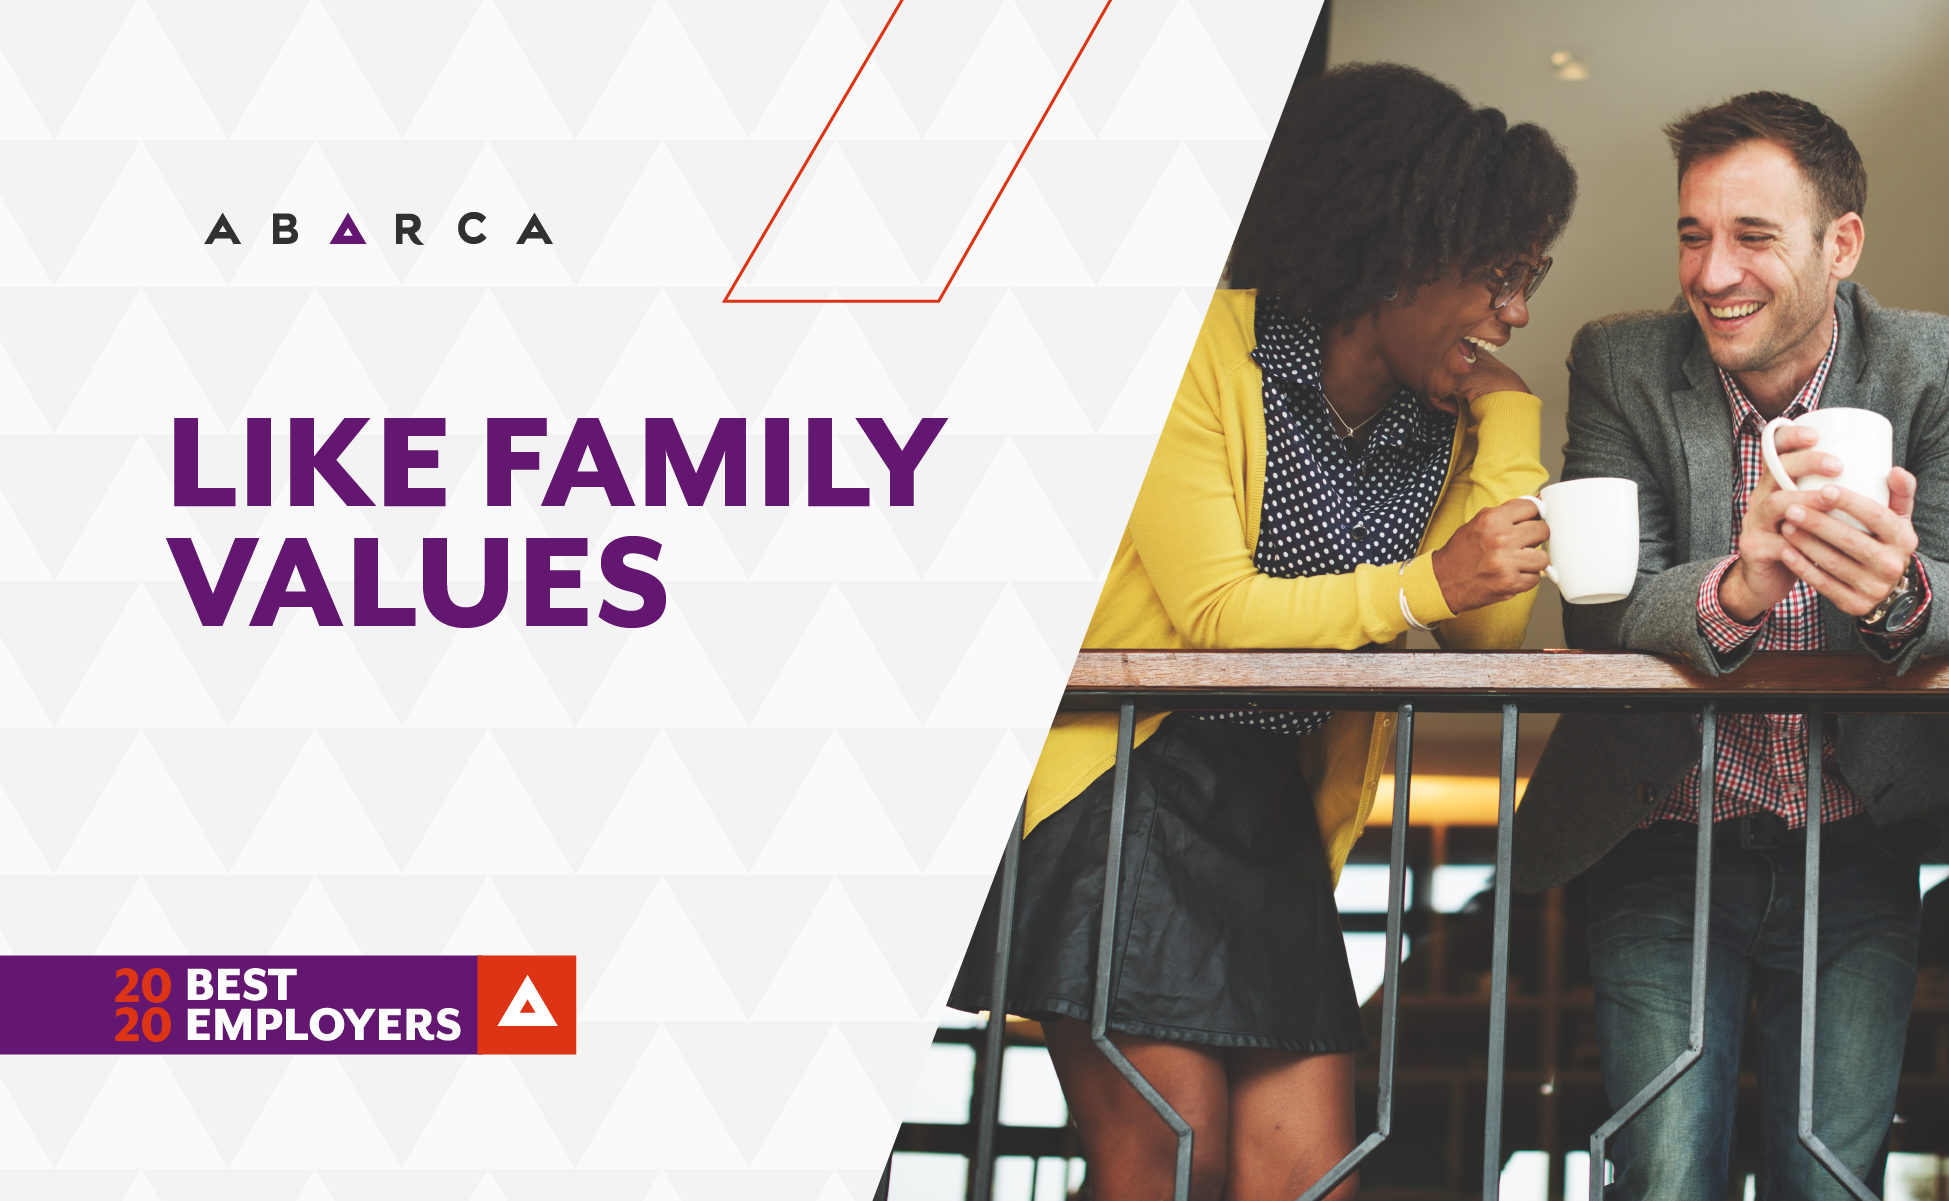 Abarca Health is living their values in healthcare.